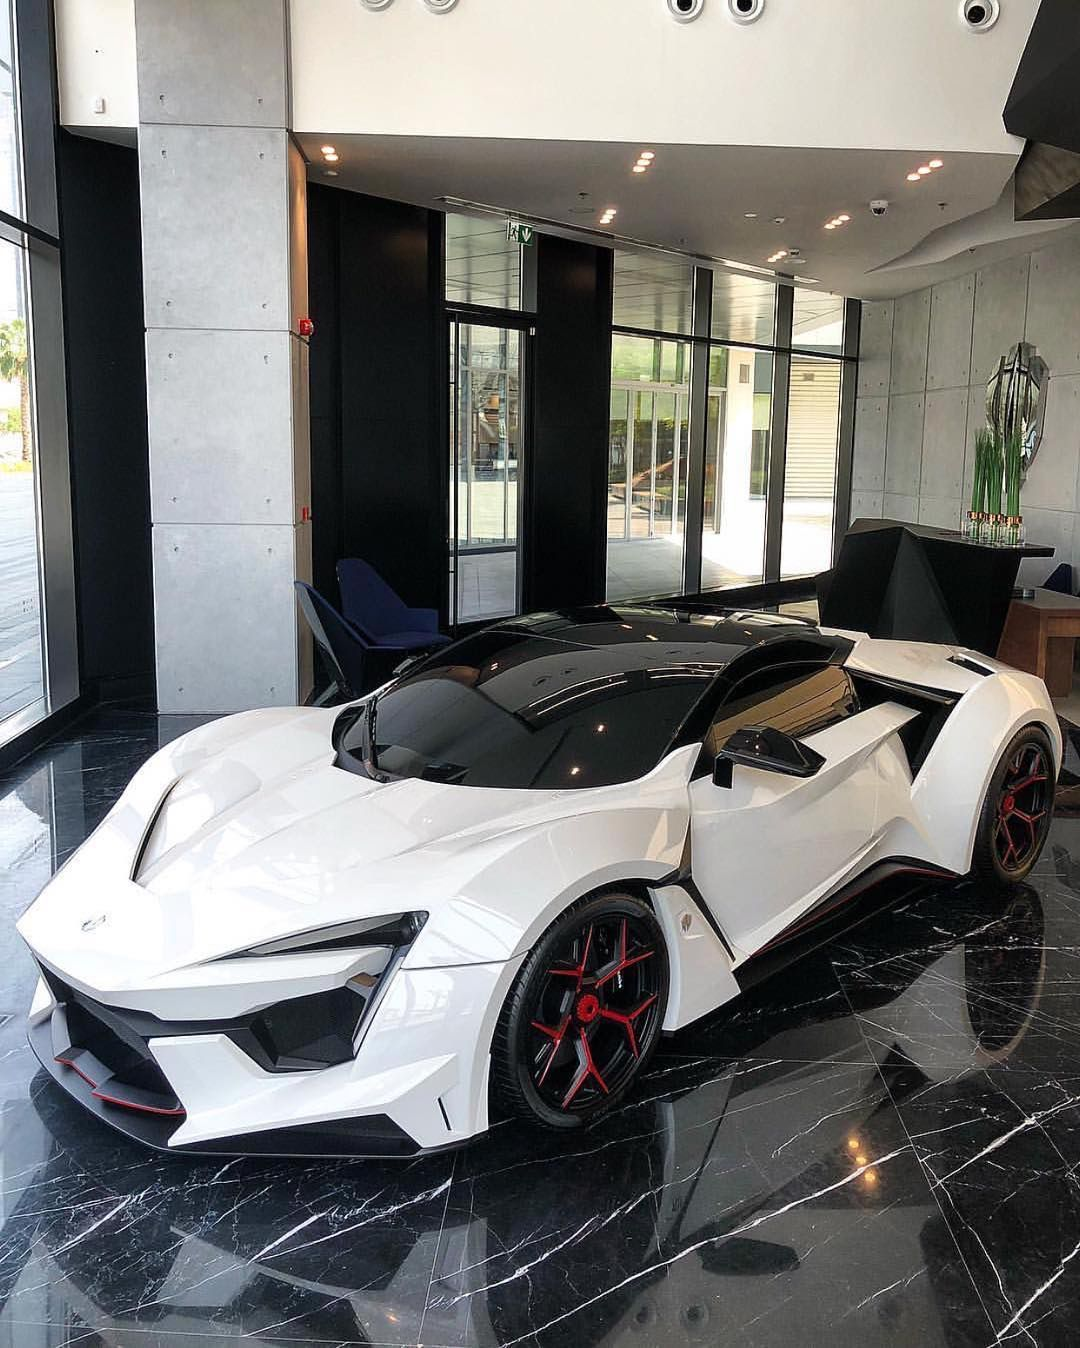 This Is A Amazing Car In 2020 Best Luxury Cars Luxury Cars Super Luxury Cars